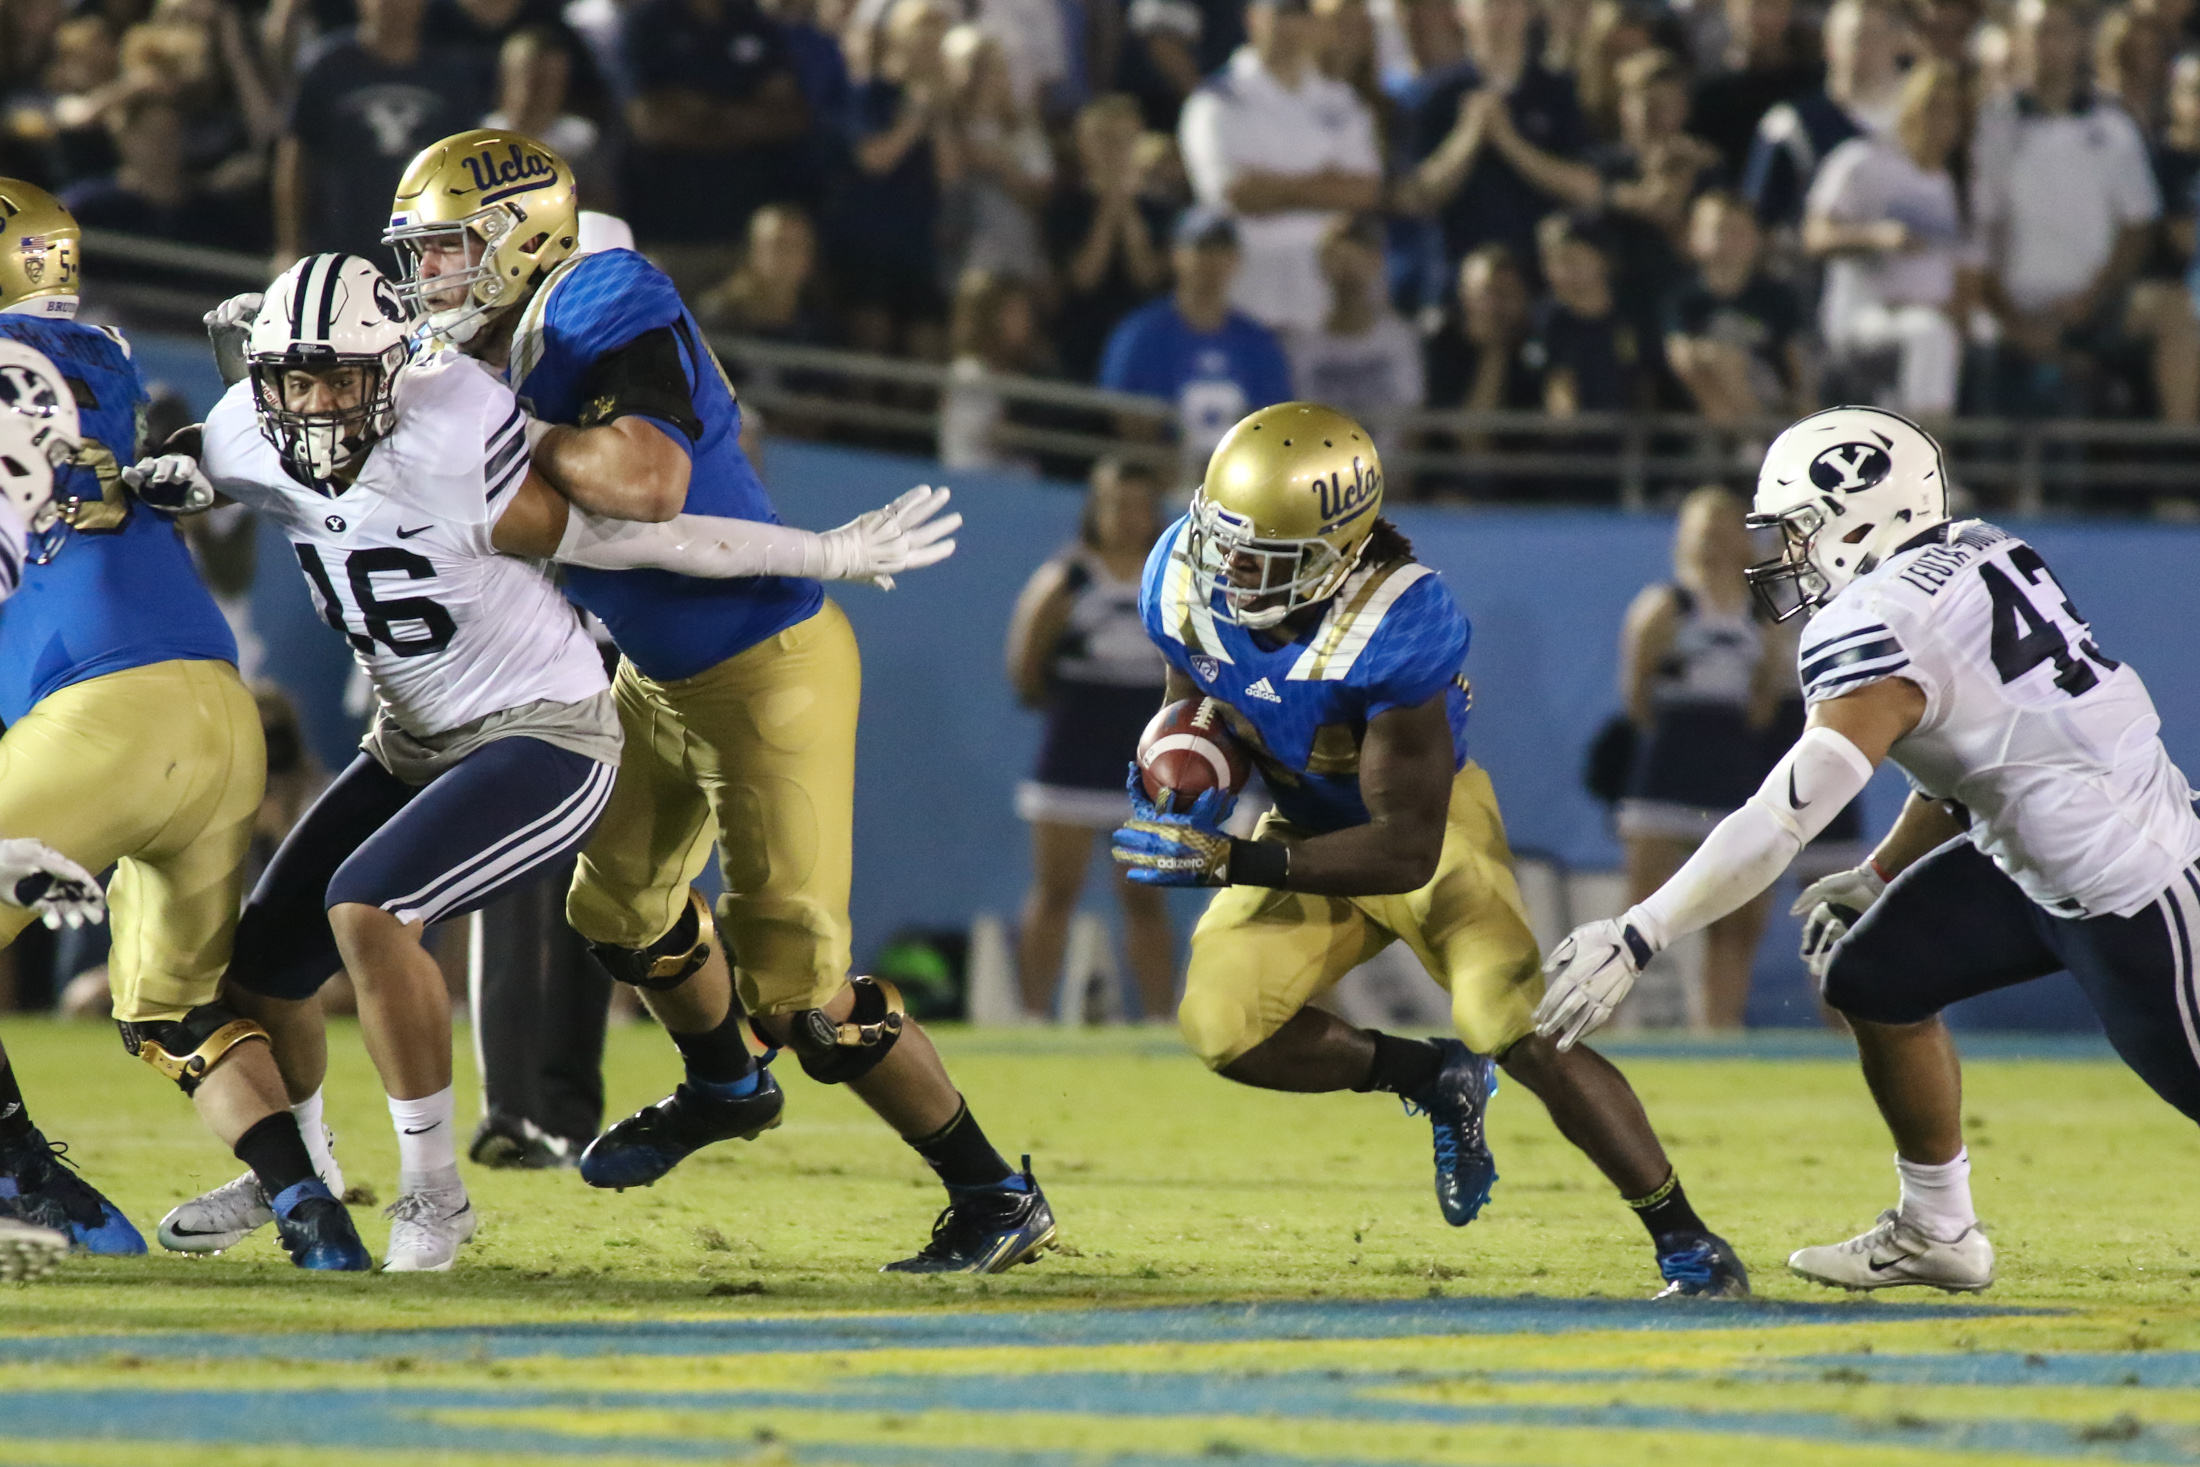 UCLA Bruin Paul Perkins finding a running lane. Photo by Jevone Moore